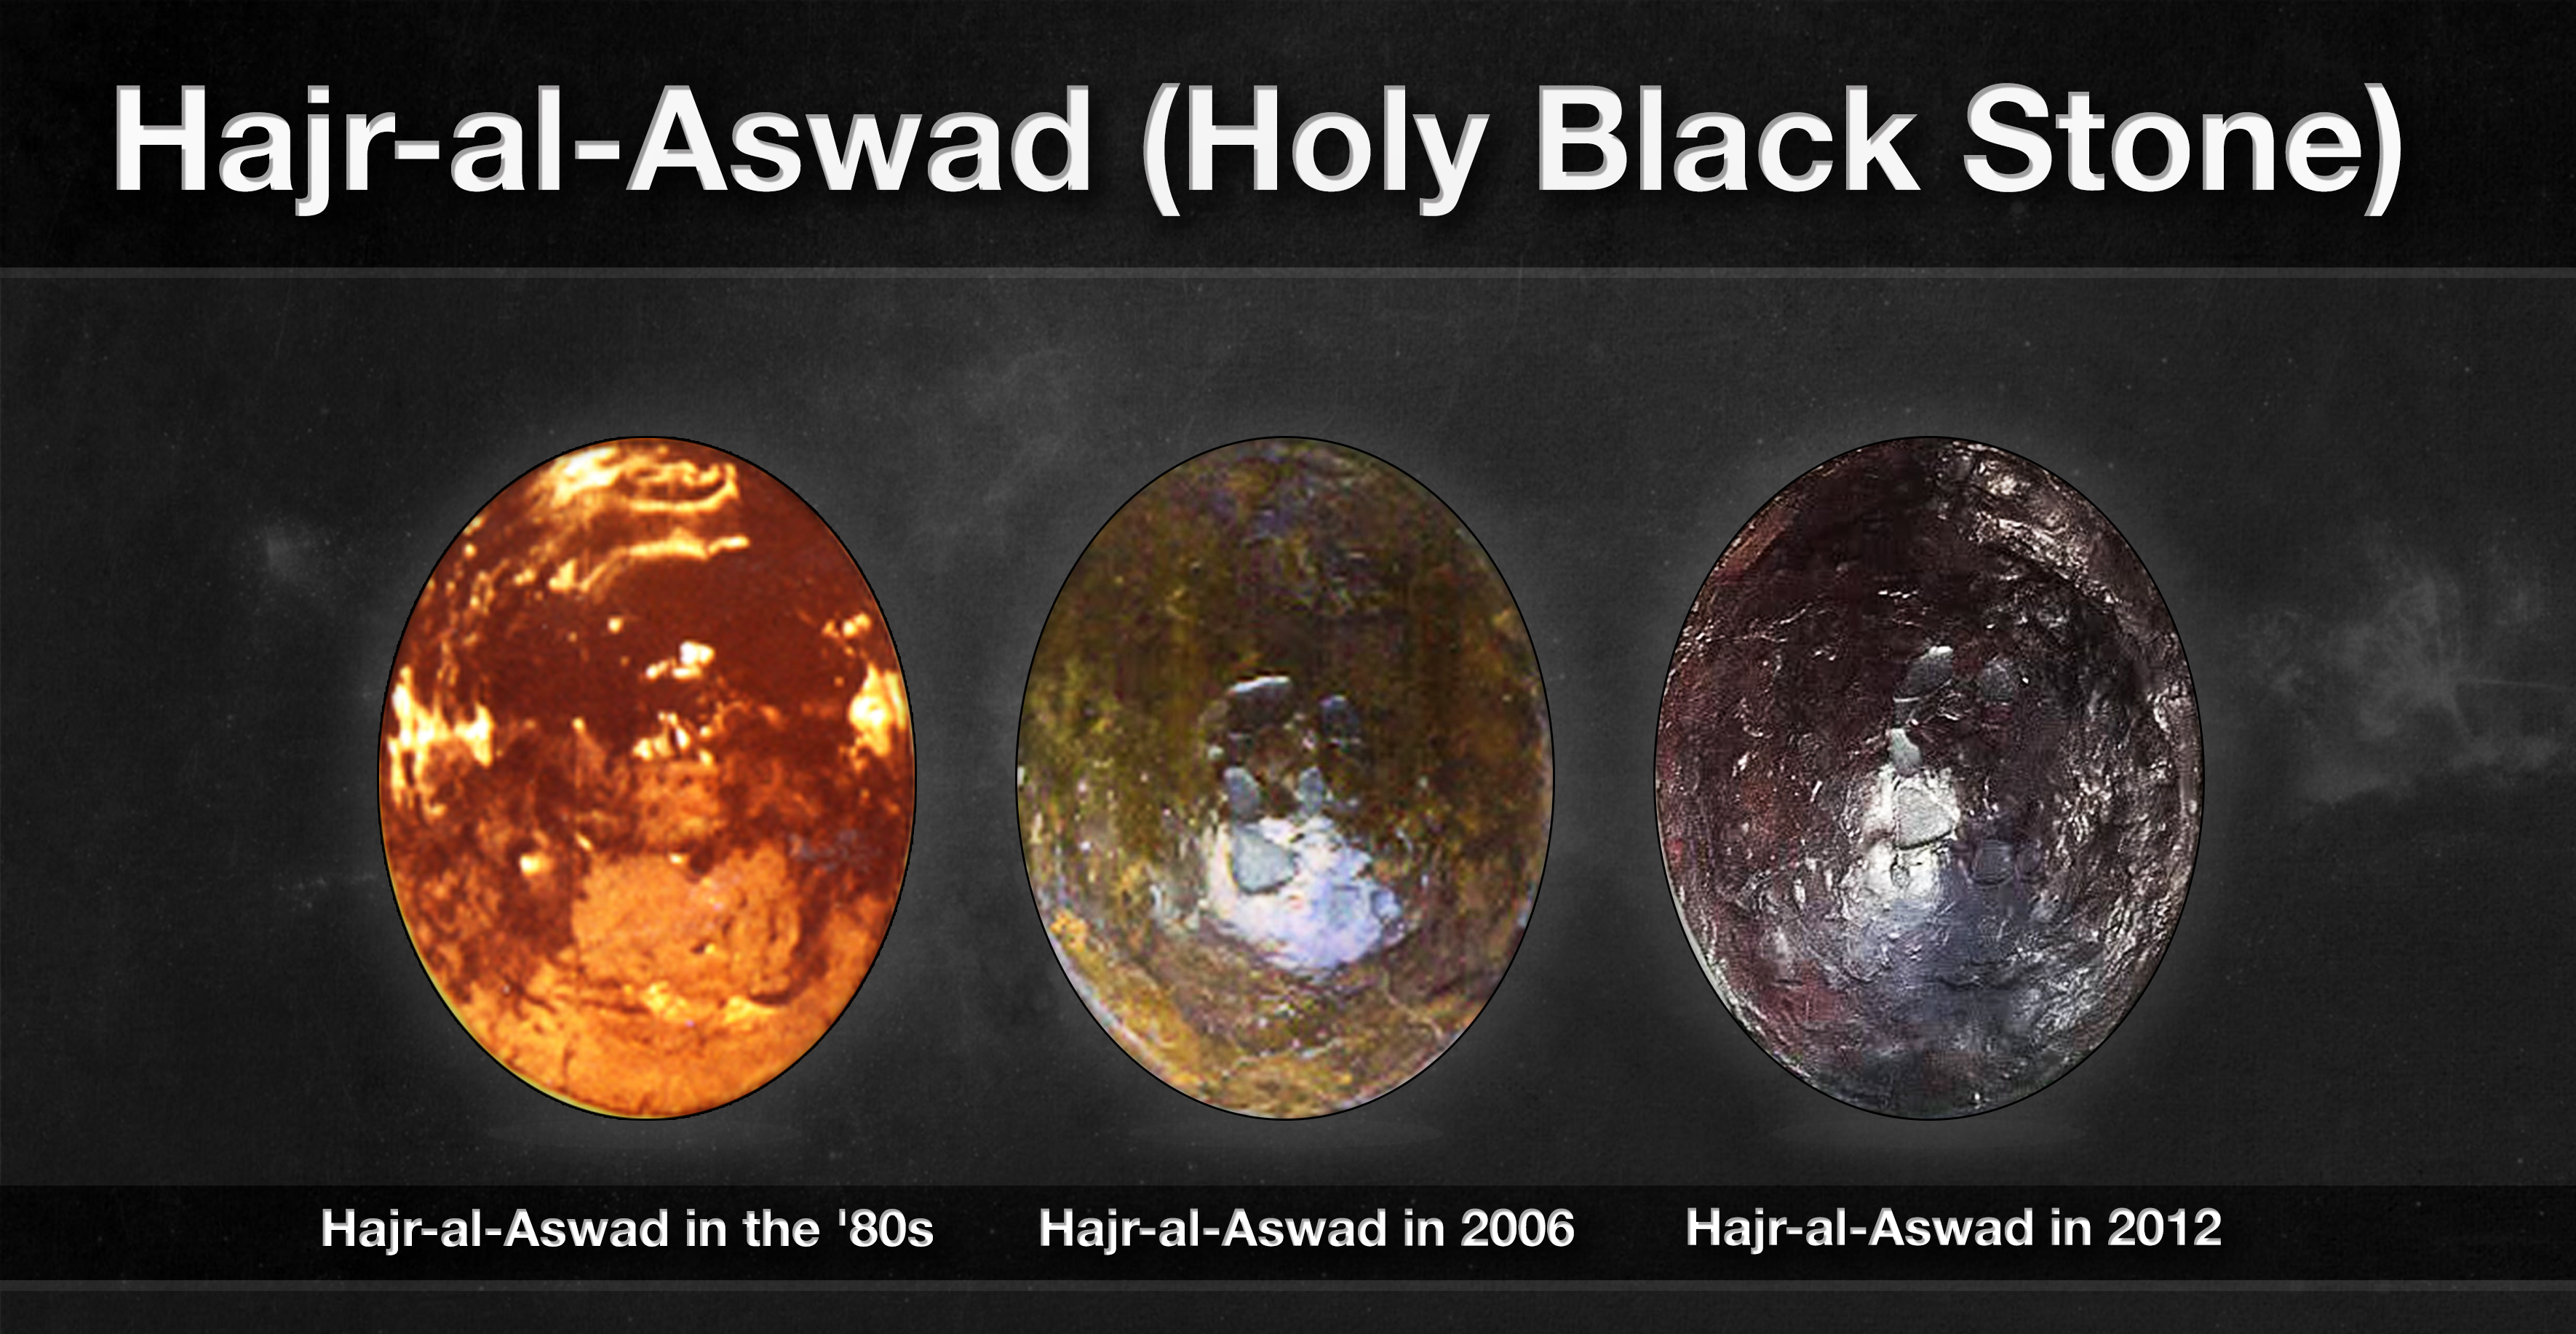 Hajr-al-Aswad: Then and Now (from 1980's-2012)